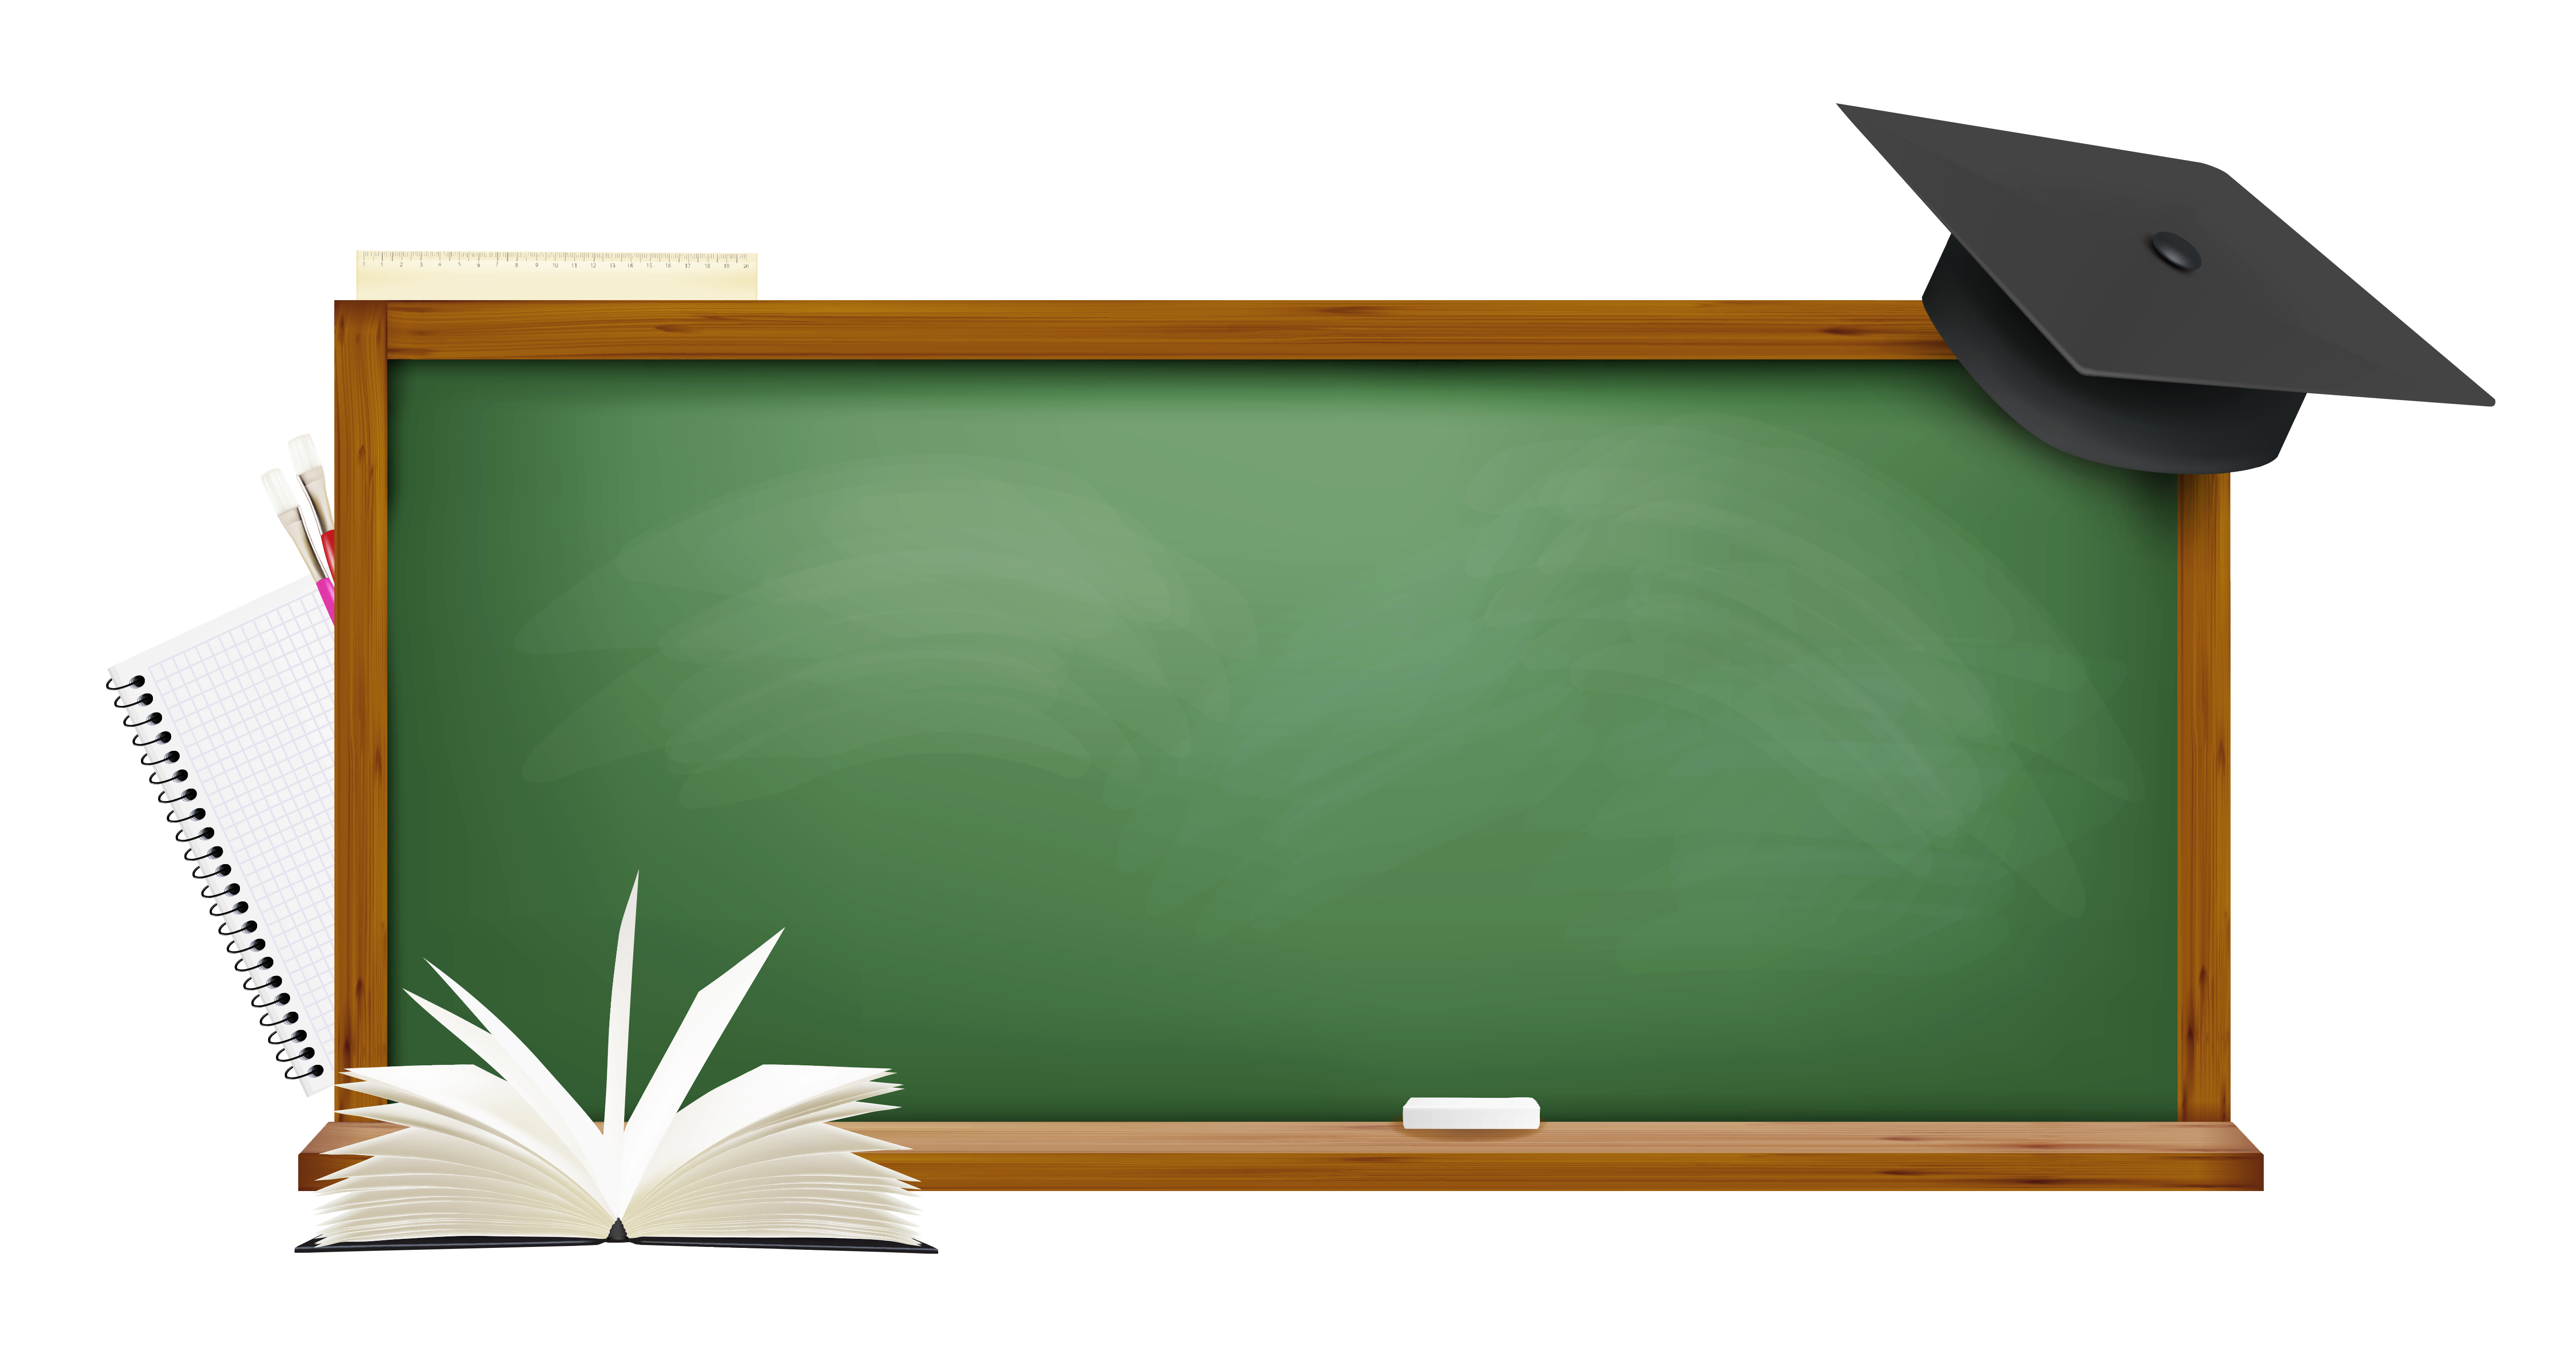 Board clipart. Green school png picture